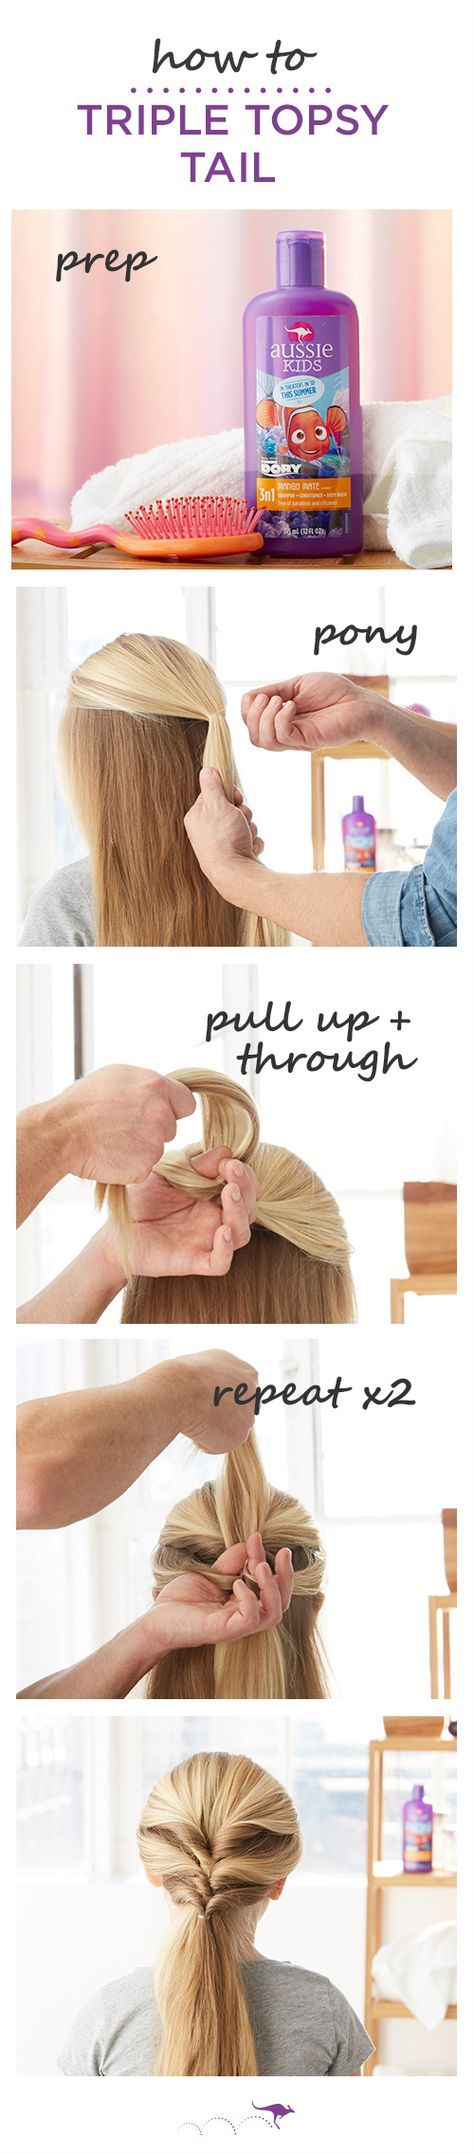 How To: Triple Topsy Tail   The perfect quick and easy kids style for play dates, trips to the park or even school   1. Section hair just above the temple and pull back into a loose pony • 2. Evenly part the section above the elastic, then pull the hair below the elastic up and through the part • 3. Repeat, evenly dividing the remaining hair into two ponytails. For smoother, stronger strands before you style, wash with Aussie Kids Mango Mate 3N1 shampoo, conditioner and body wash.